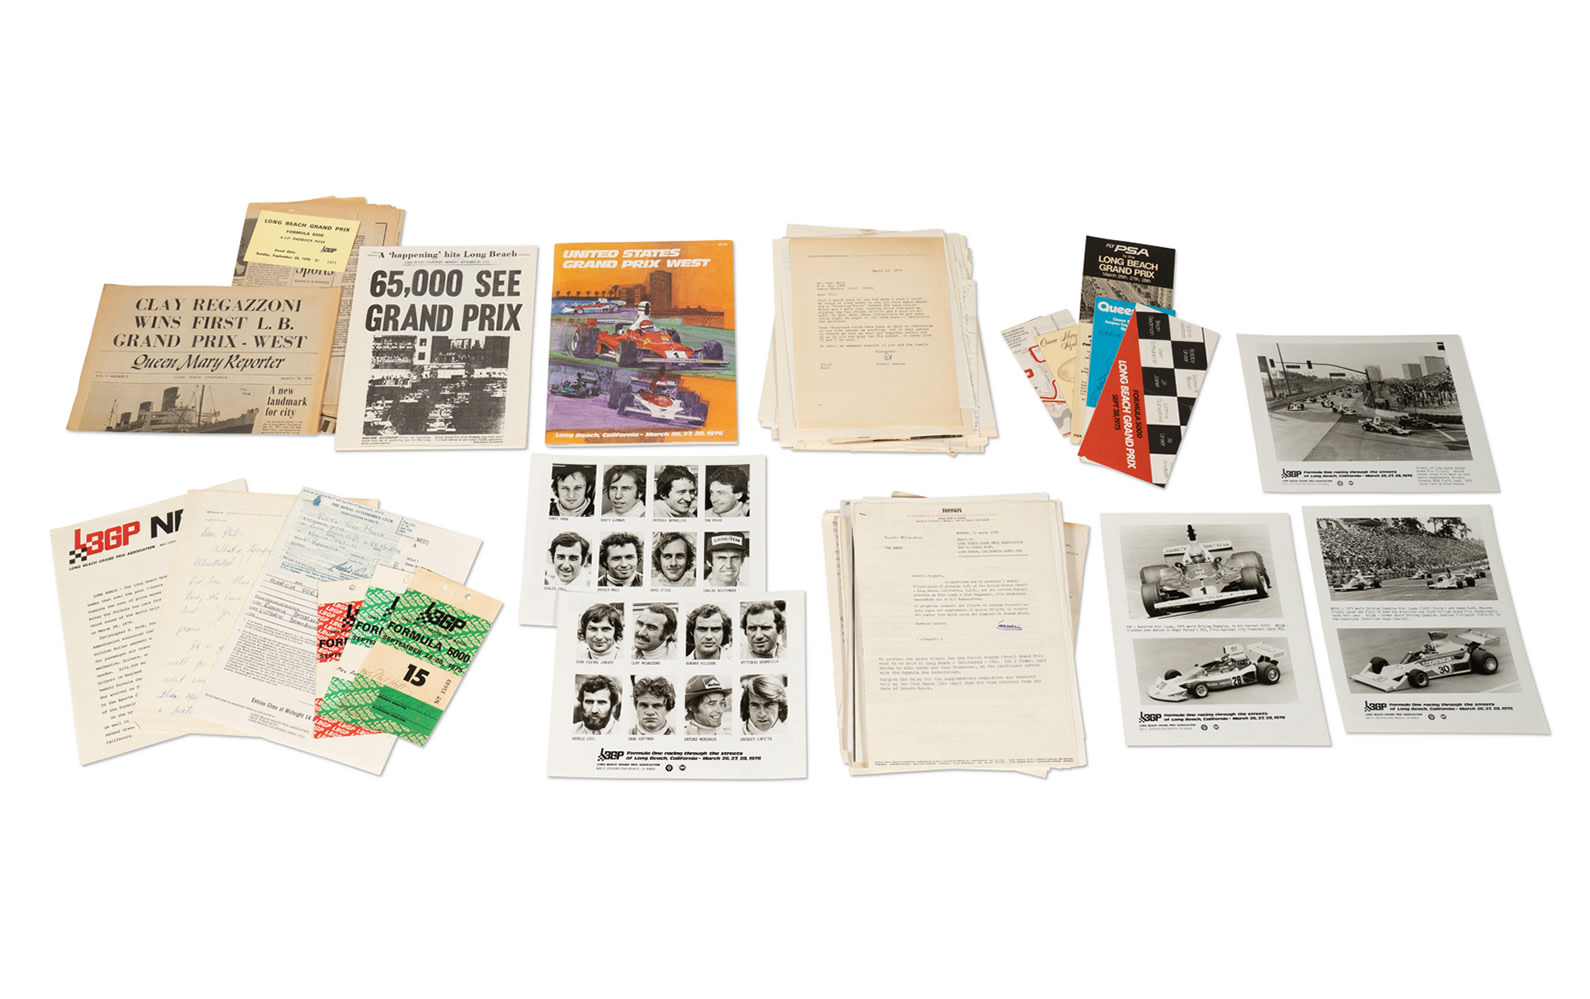 Assorted Paperwork and Files Pertaining to the Long Beach Grand Prix